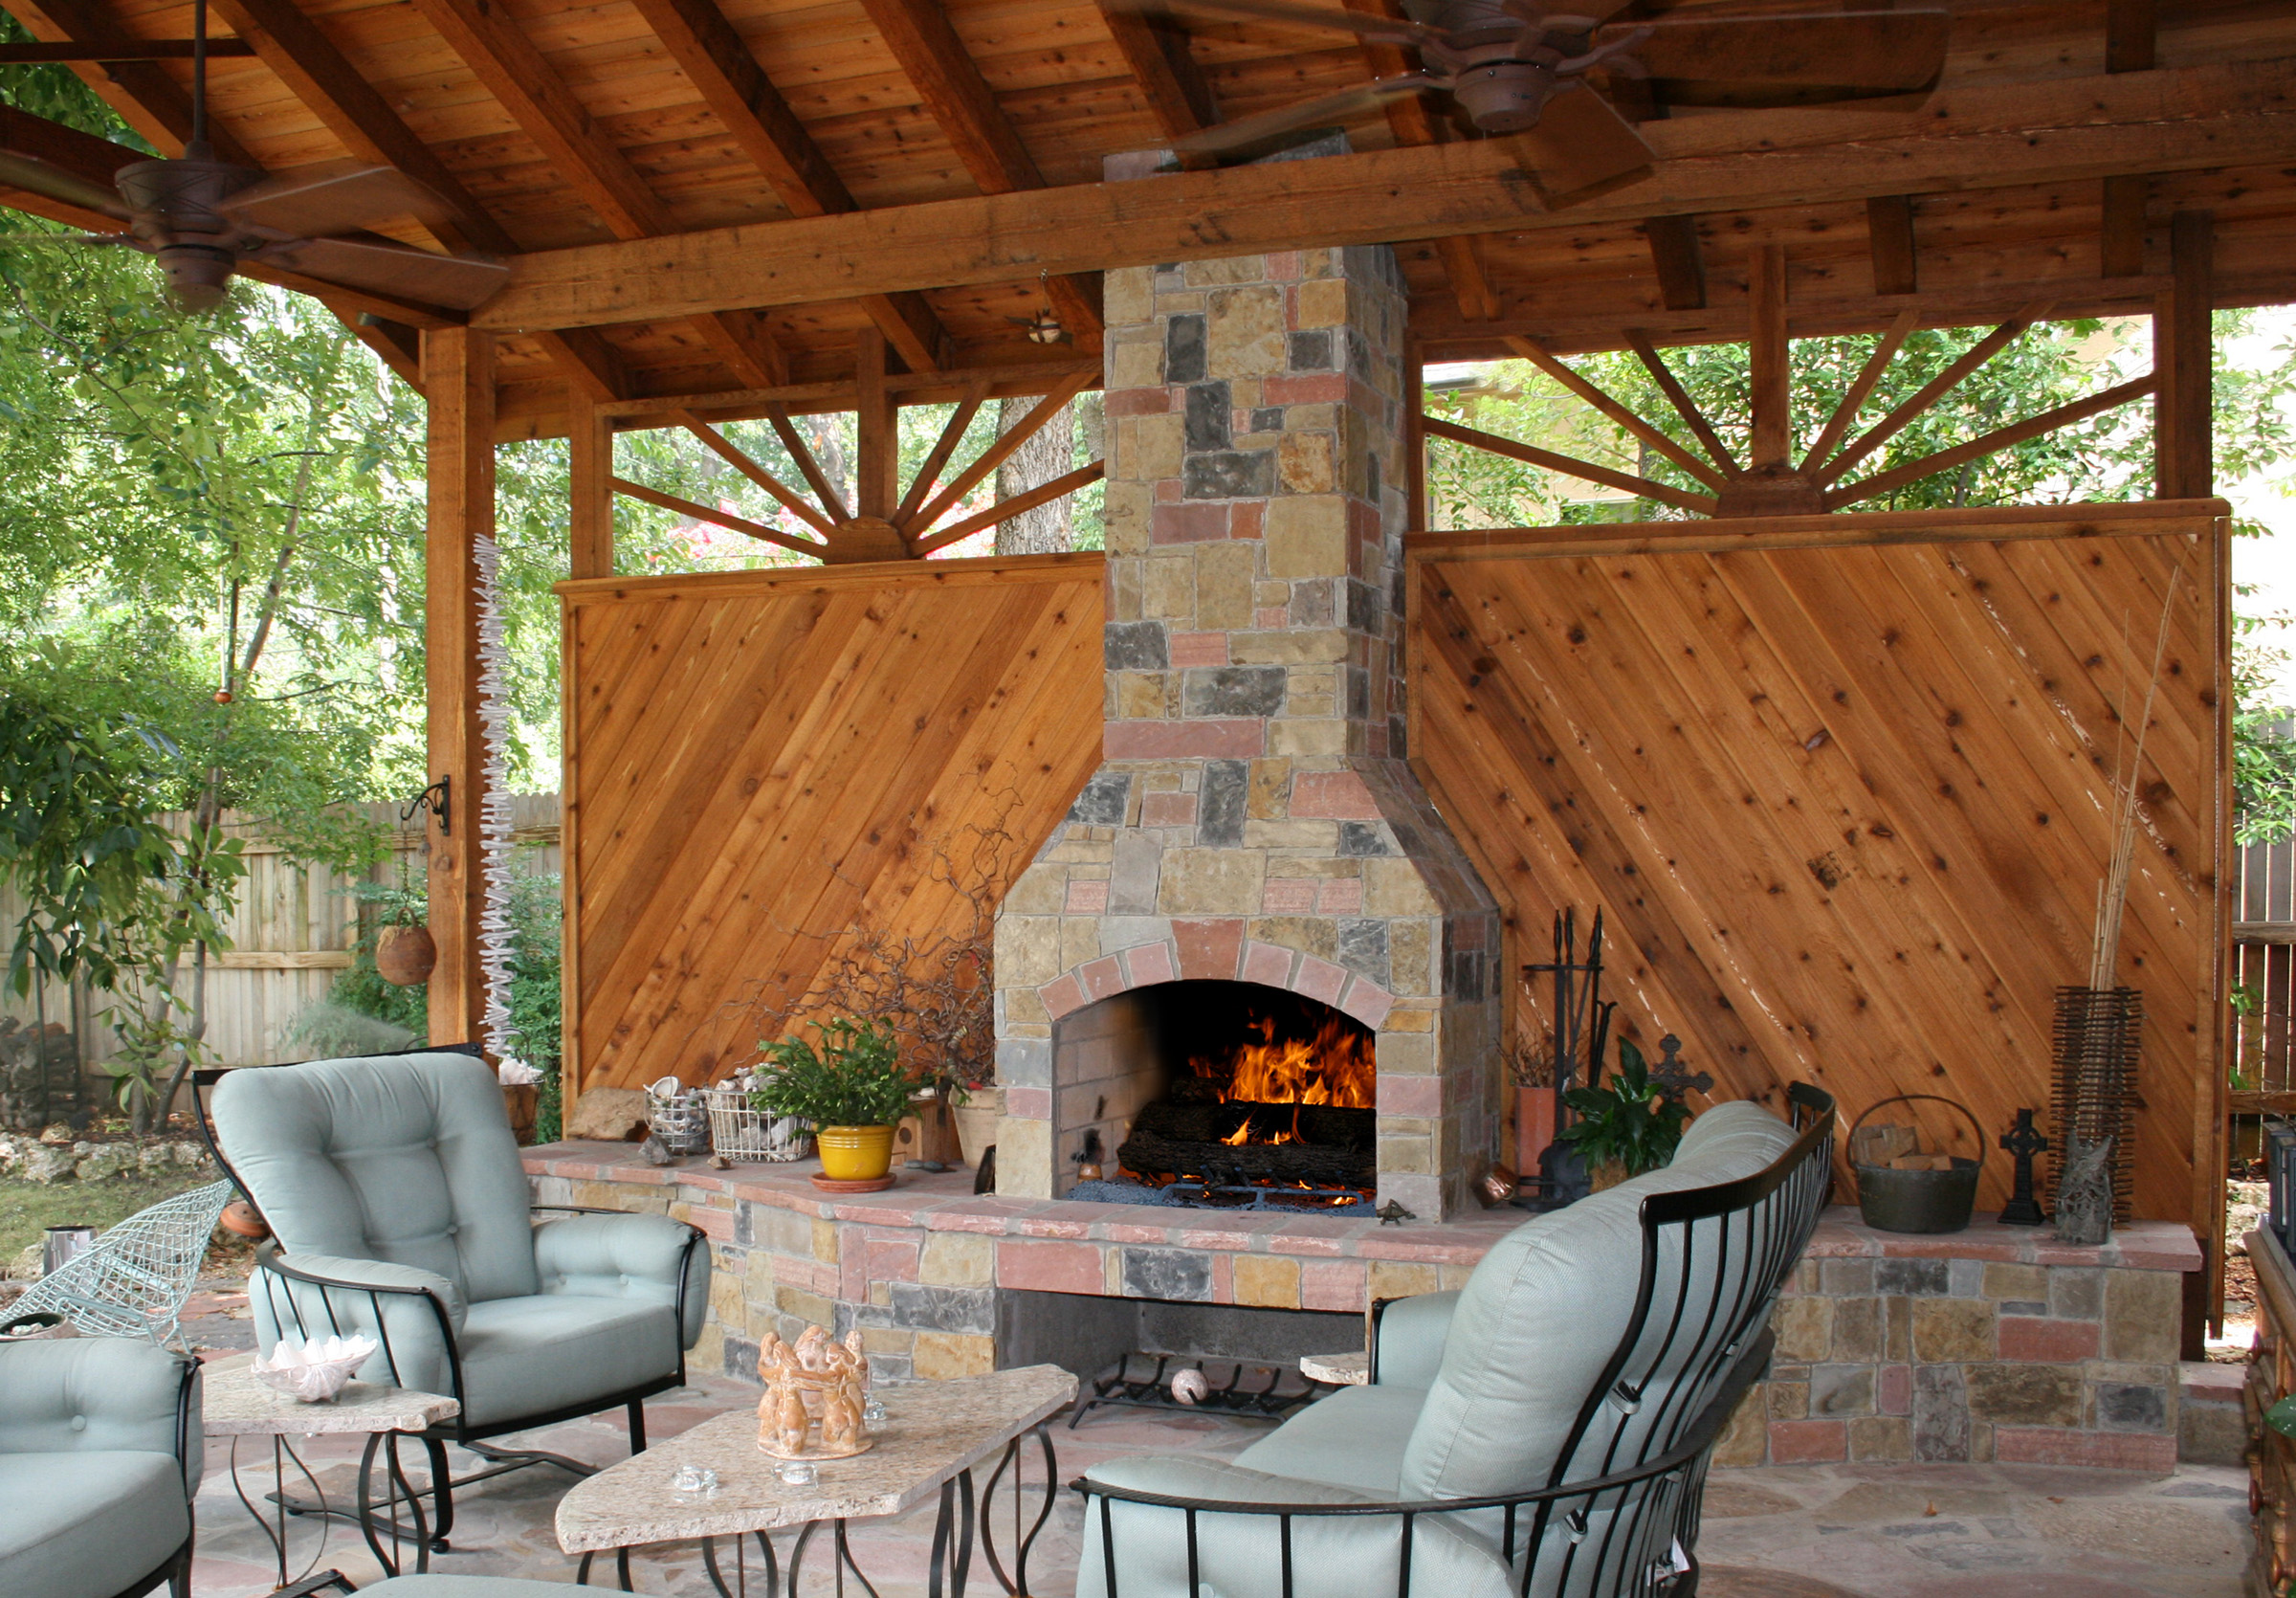 services brickpaver paver portfolio pizza brick custom landscape ovens backyard fireplaces oven outdoor and fireplace